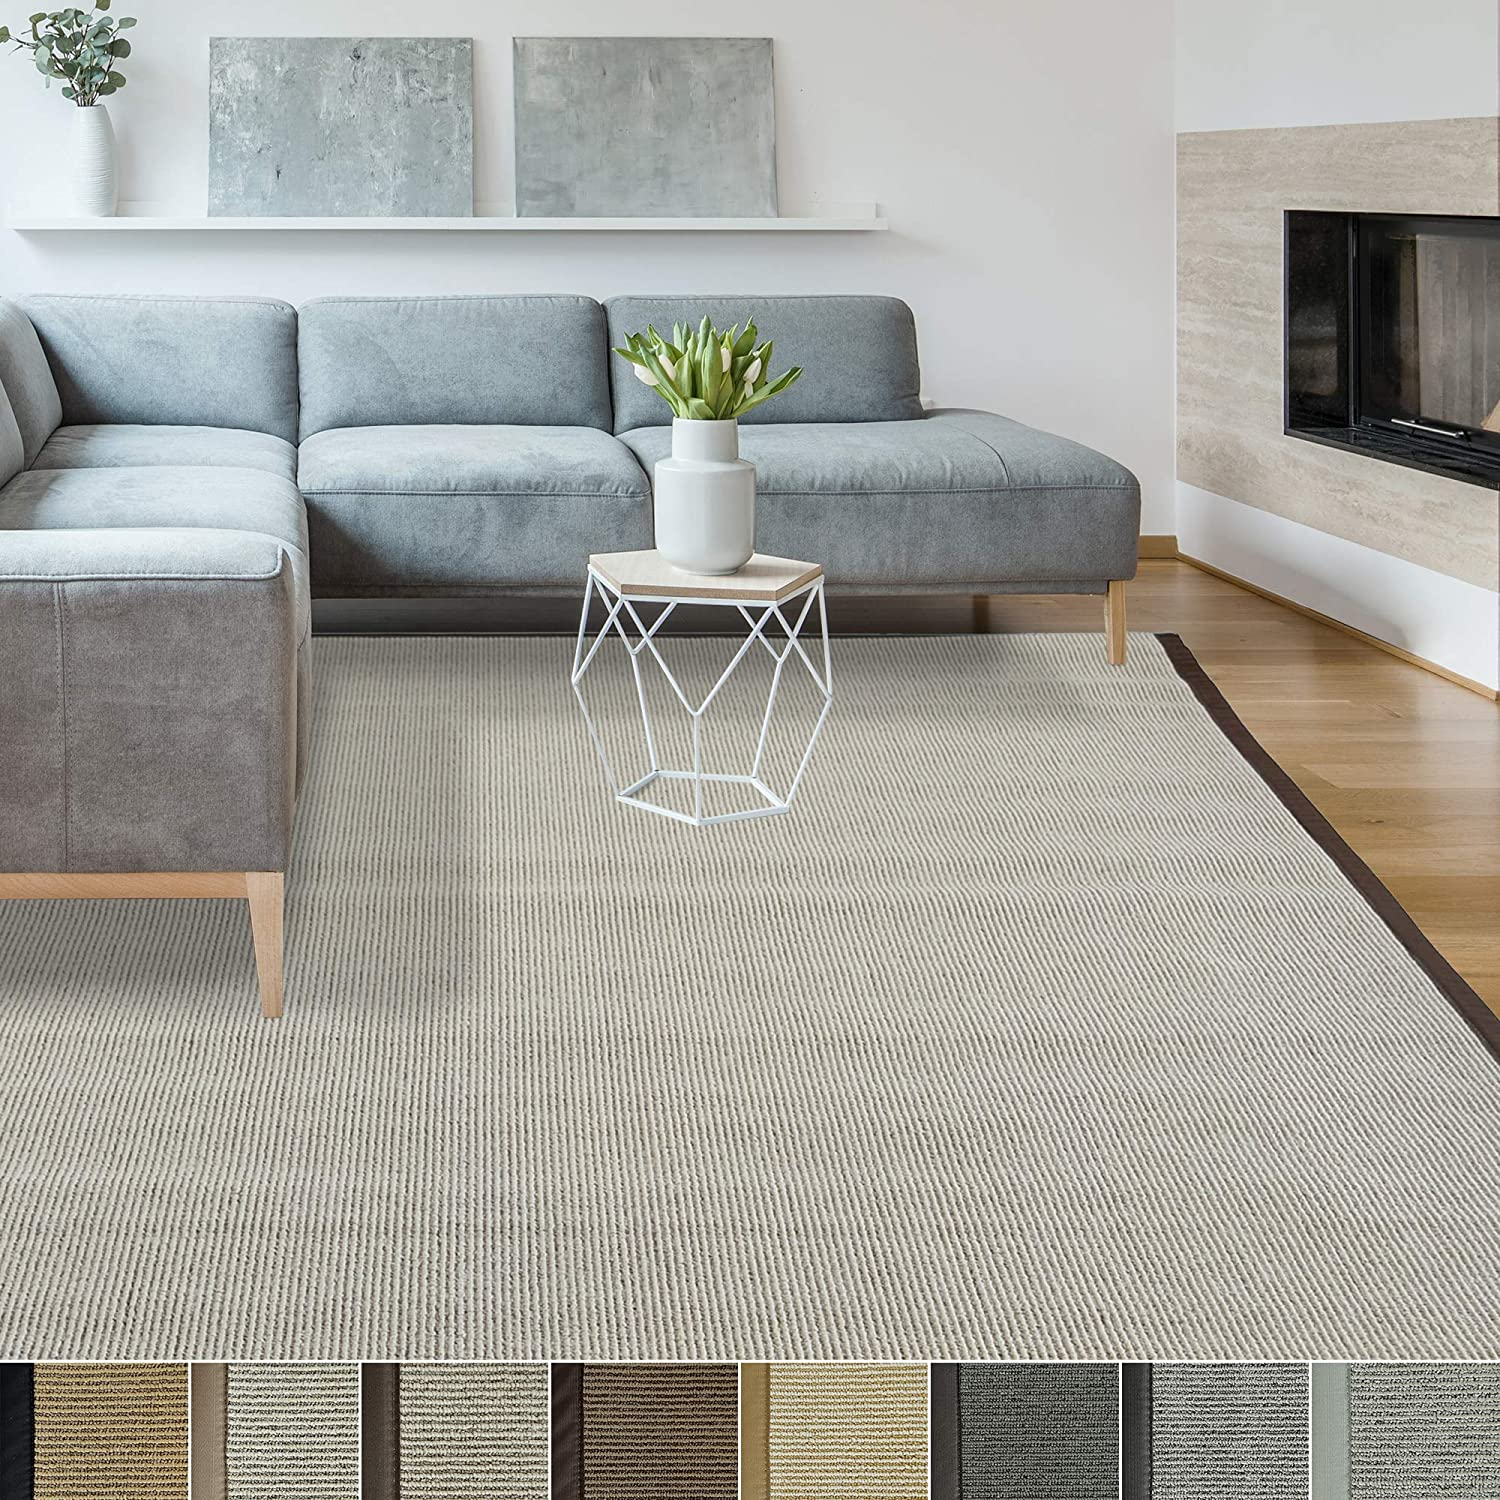 iCustomRug Zara Synthetic Sisal Collection Area Rug and Custom Size Runners, Softer Than Natural Sisal Rug, Stain Resistant & Easy to Clean Beautiful Border Rug in Brown 2' X 5'